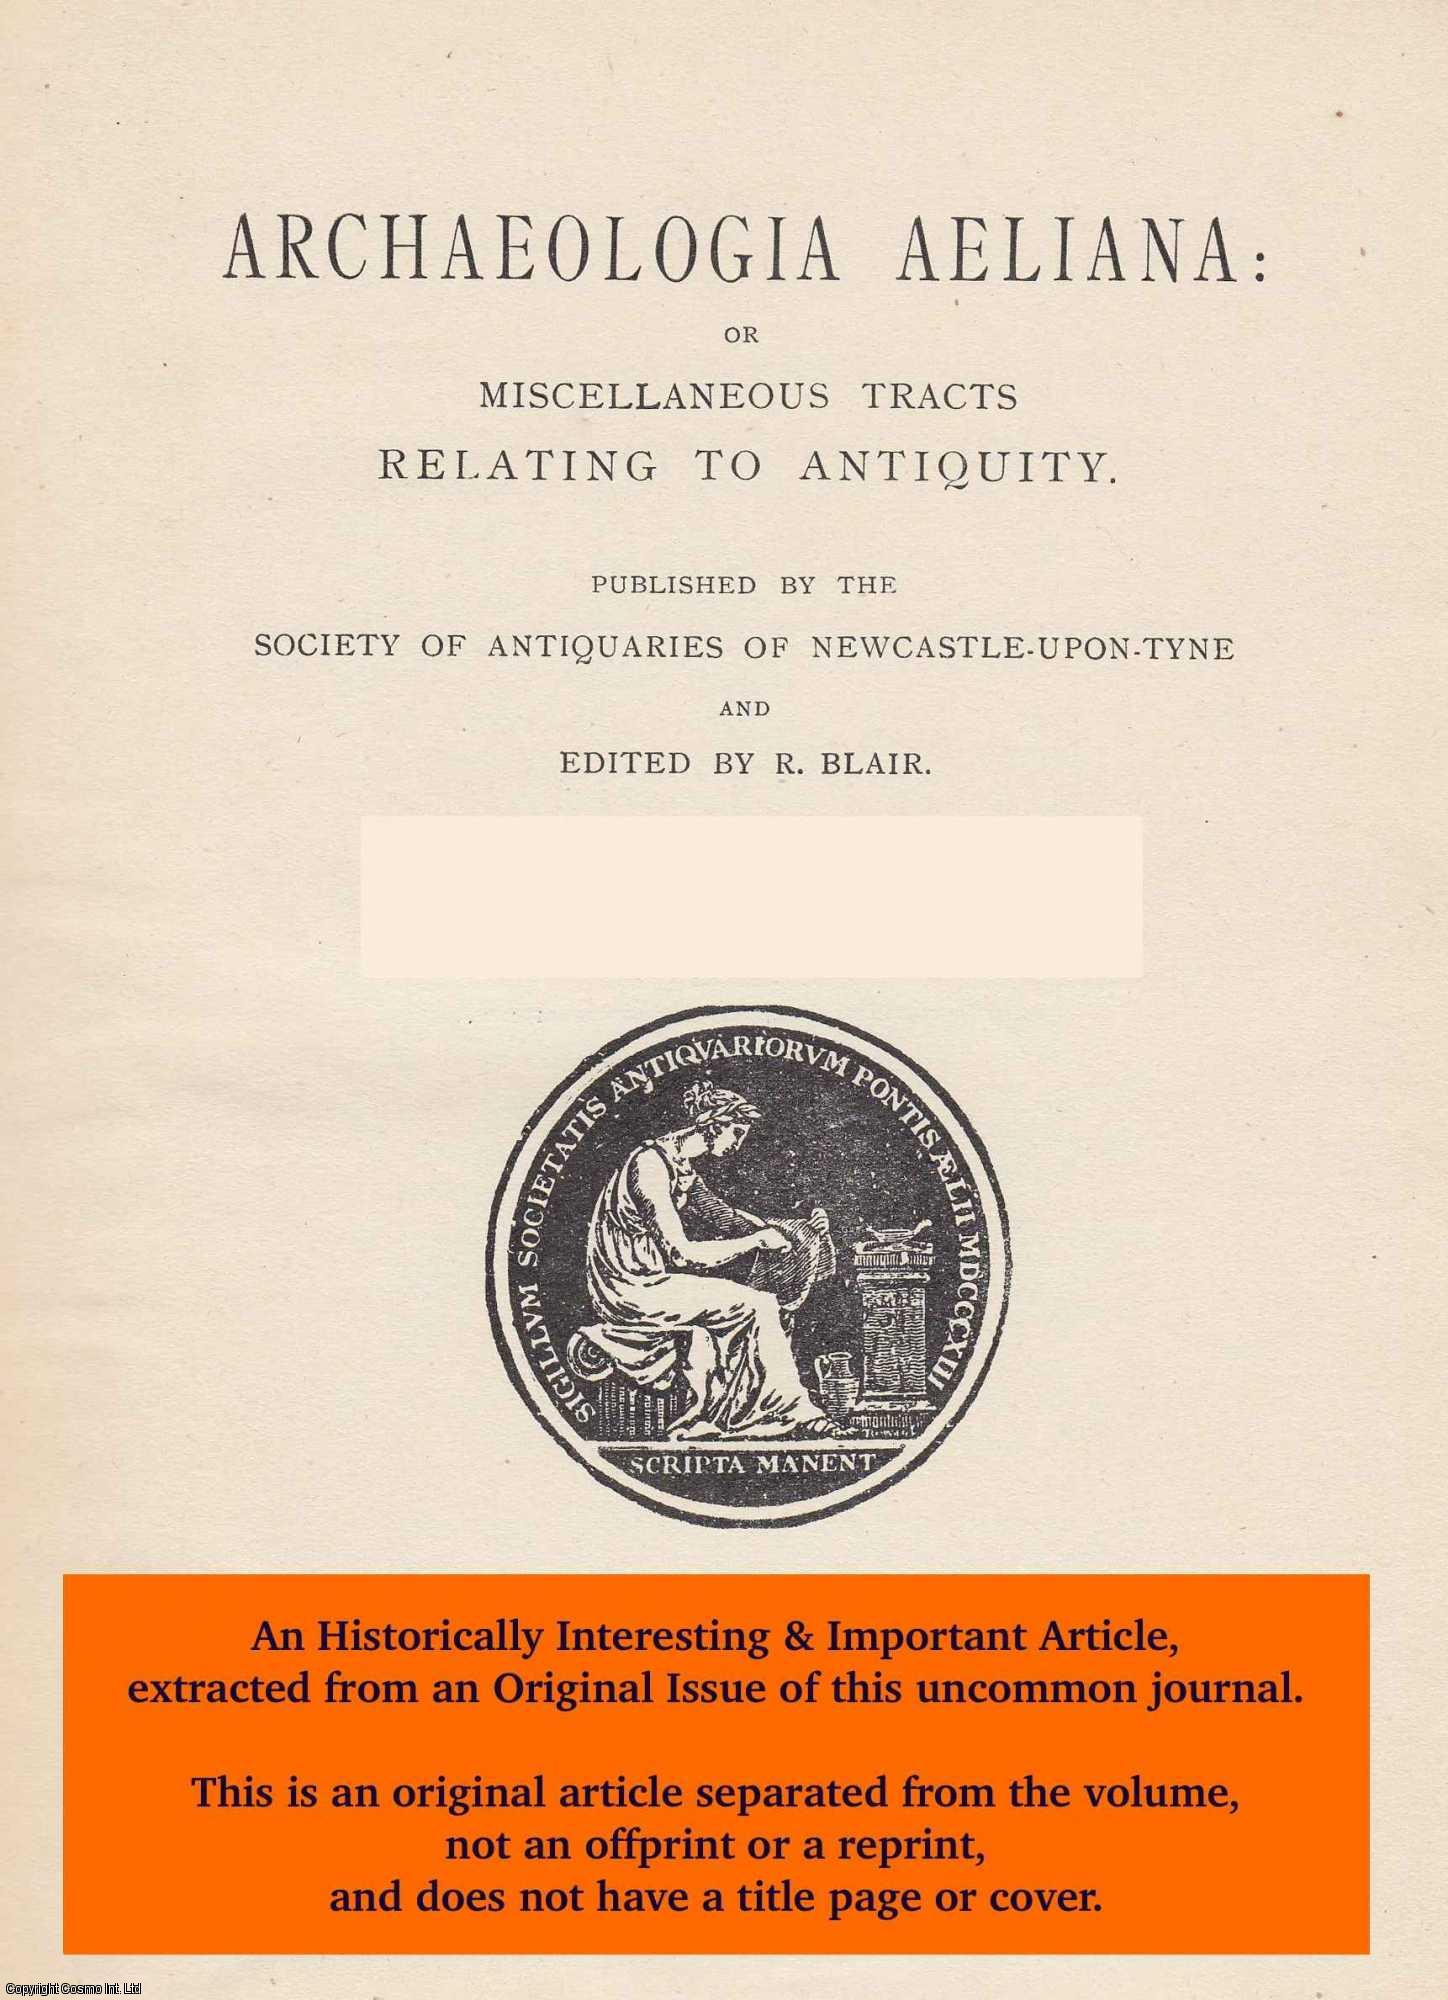 BIRLEY, ERIC - Another Record of Lollius Urbicus from Corstopitum. An original article from The Archaeologia Aeliana: or Miscellaneous Tracts Relating to Antiquity, 1936.